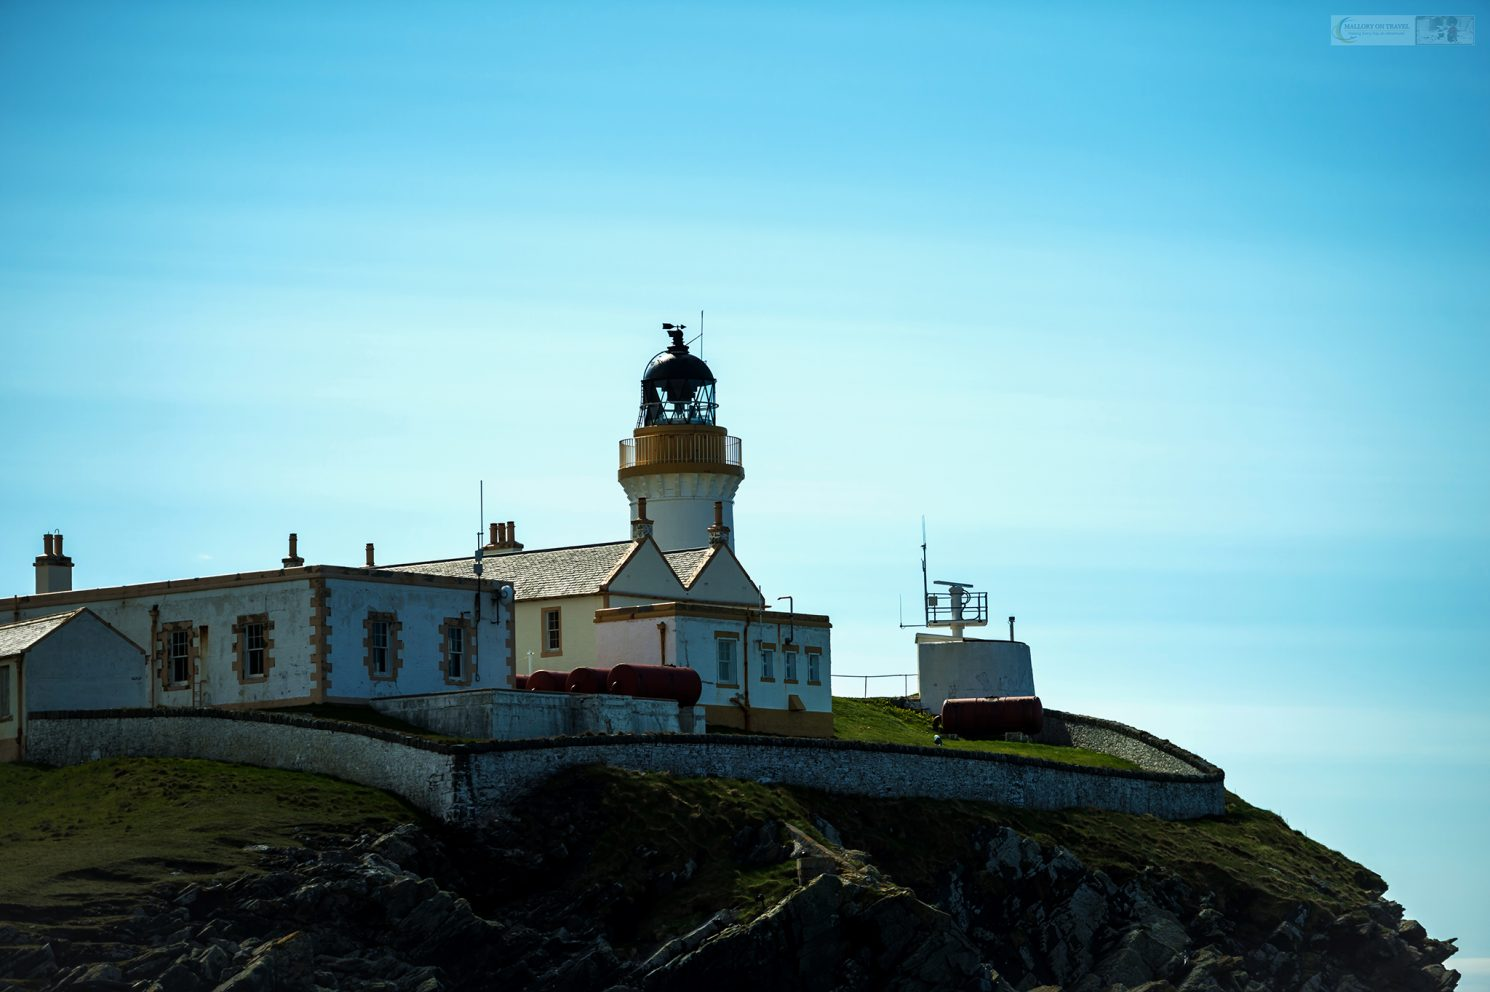 Highlights of a highland roadtrip; Eshaness lighthouse on Shetland in the highlands and islands of Scotland on Mallory on Travel adventure travel, photography, travel Iain Mallory_Scotland 001-21